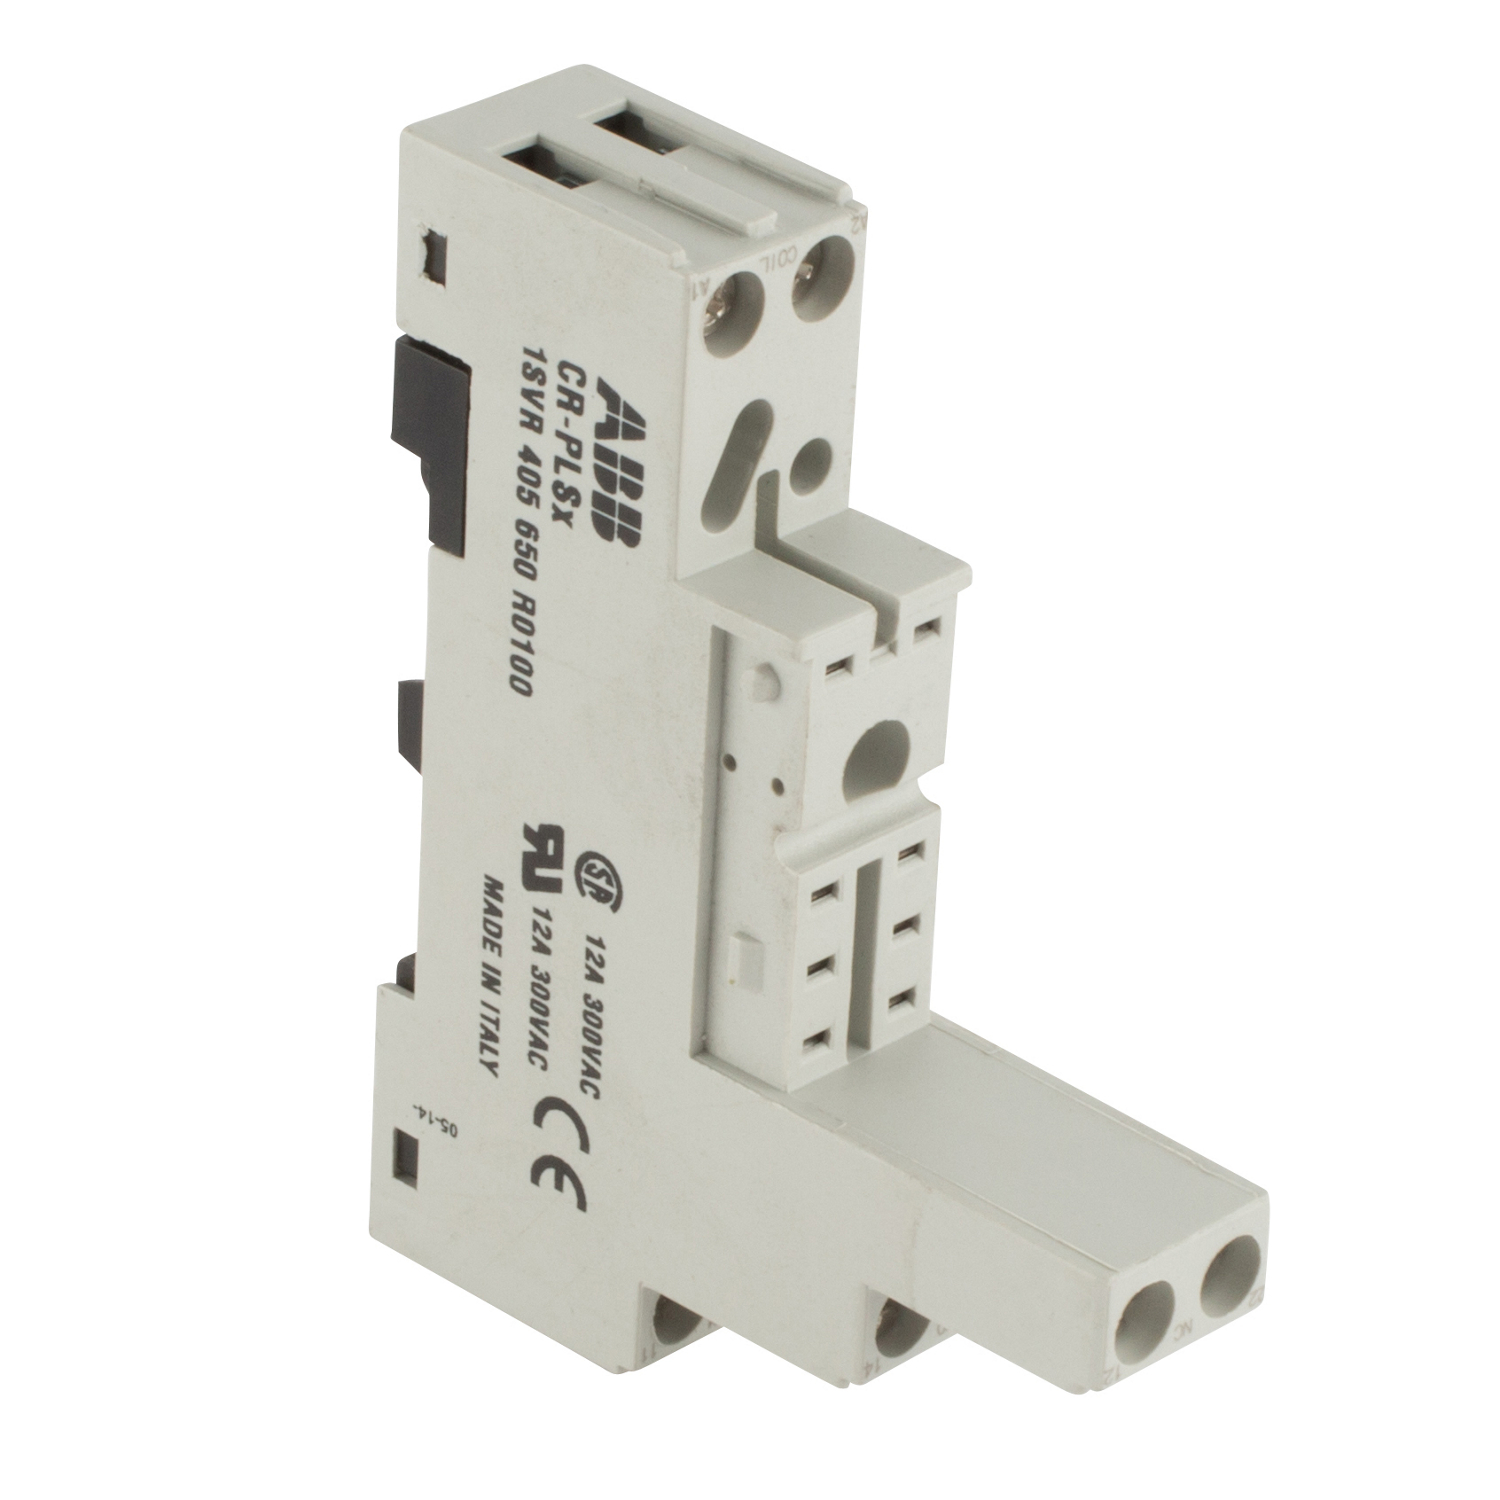 Cr Type Relay Socket For Mounting Control And A Logic Module Terminal Screw Connections